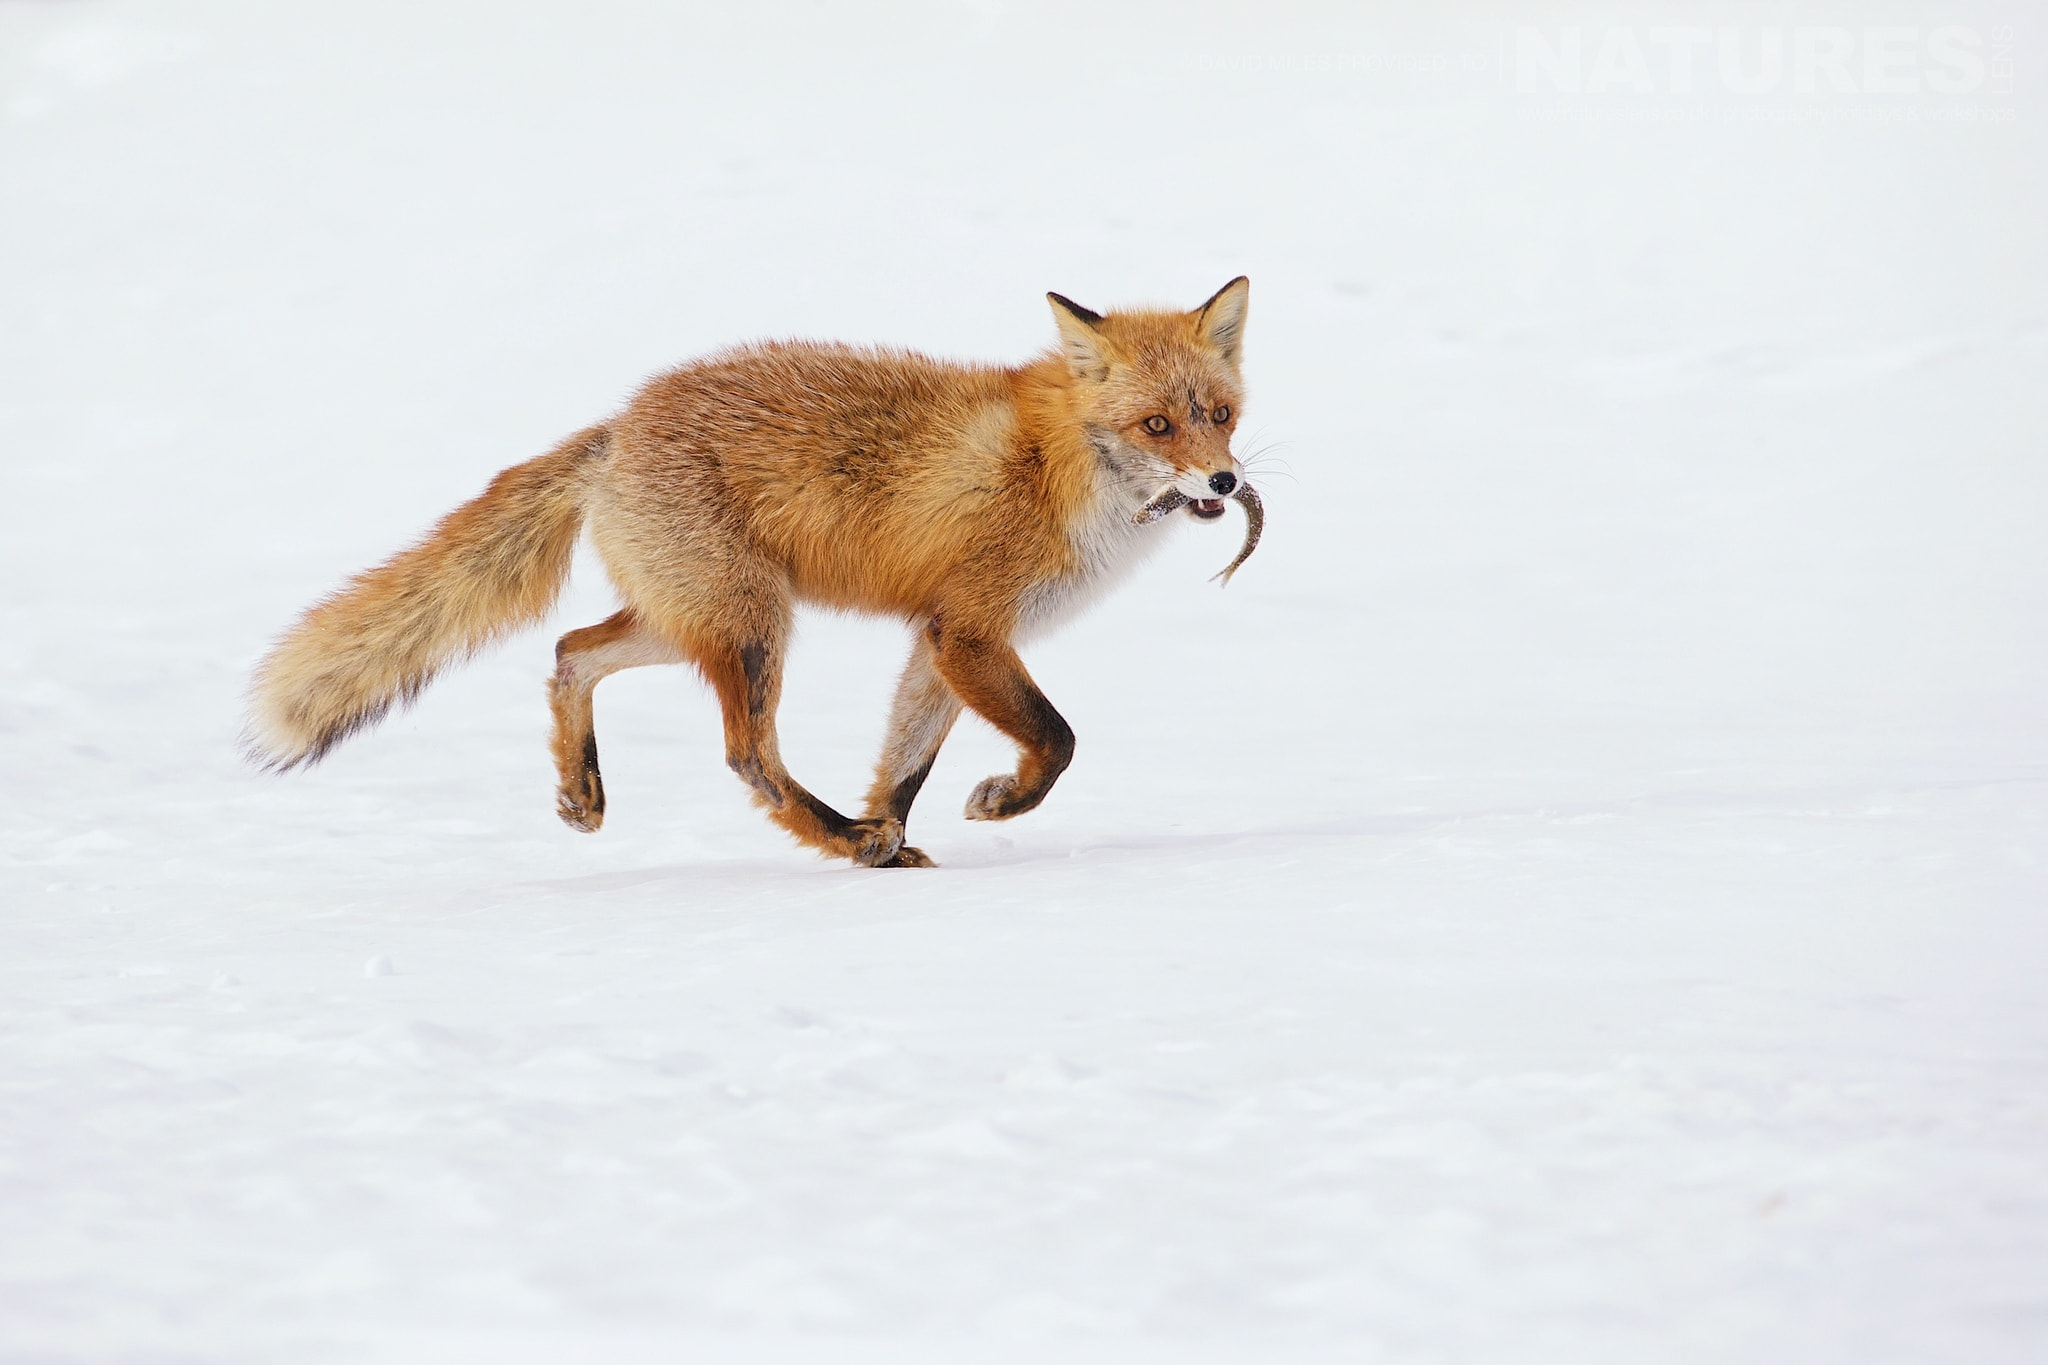 A Red Fox Makes An Escape With A Fish   Photographed During The Winter Wildlife Of Japan Photography Holiday